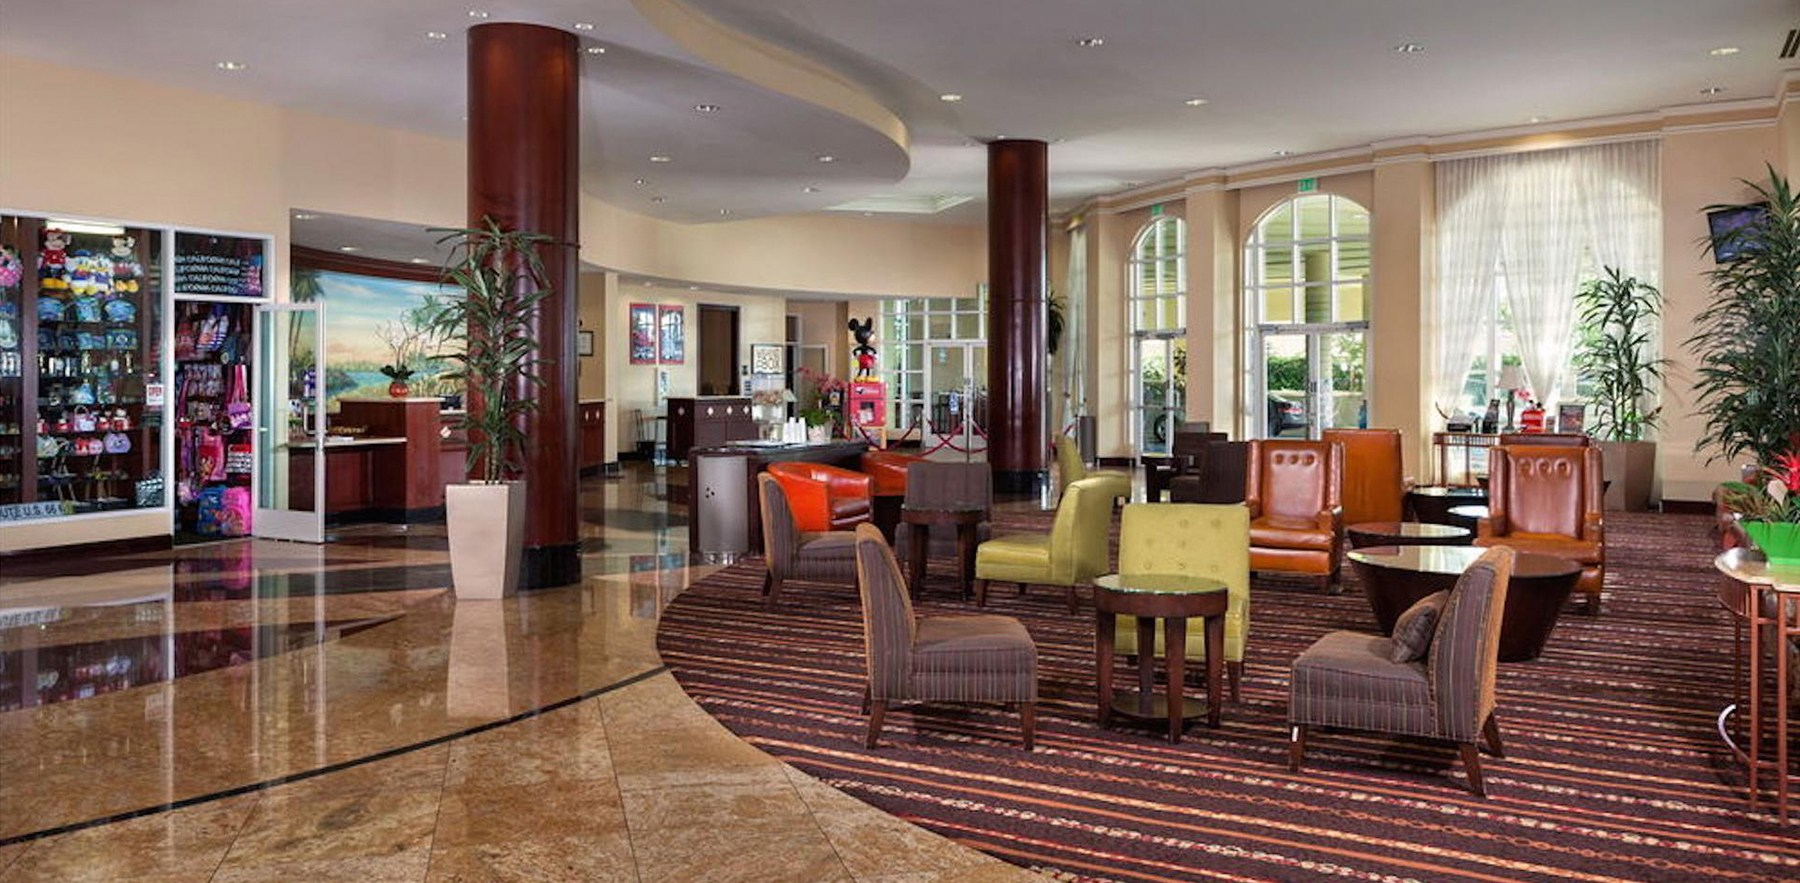 Group Hotel Rates Near All The Top Attractions